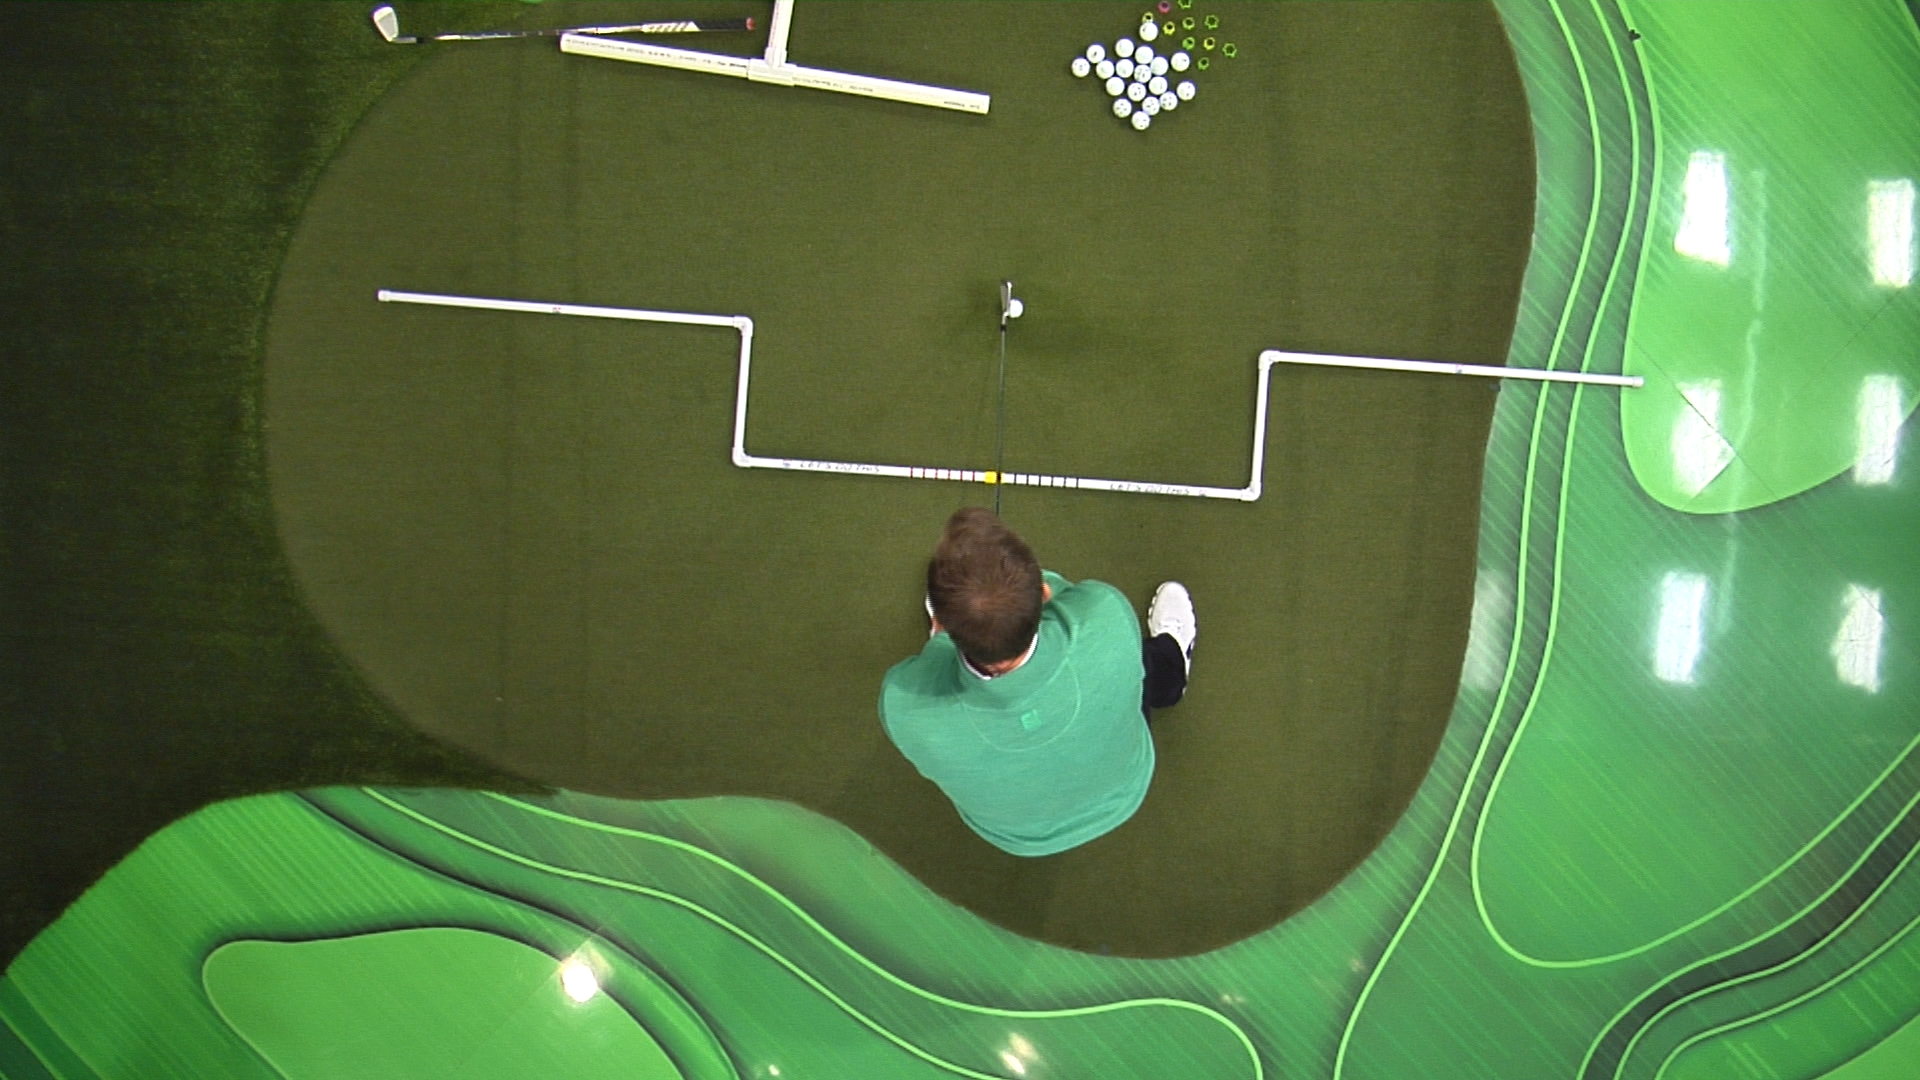 Golf Alignment Tips Drills Amp Video Lessons Golf Channel